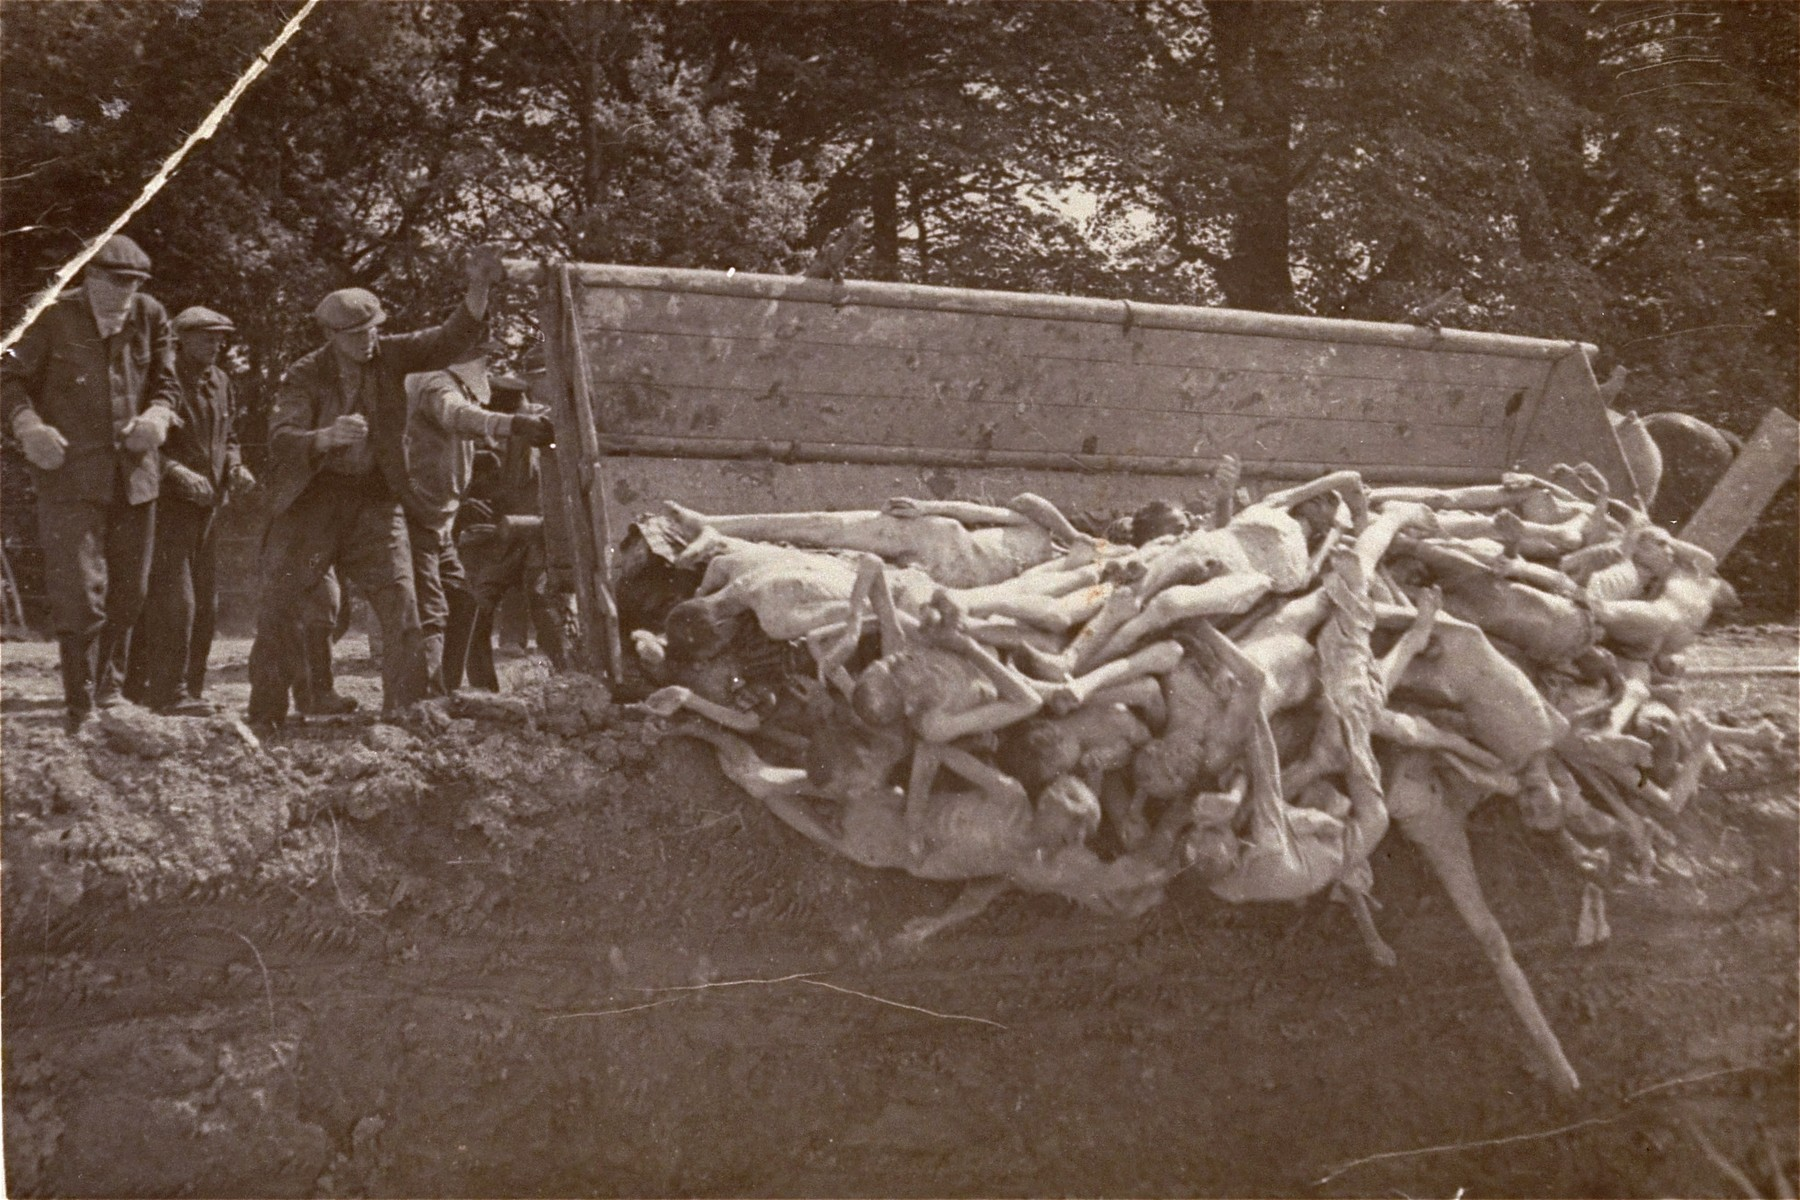 German civilians bury bodies in a mass grave.